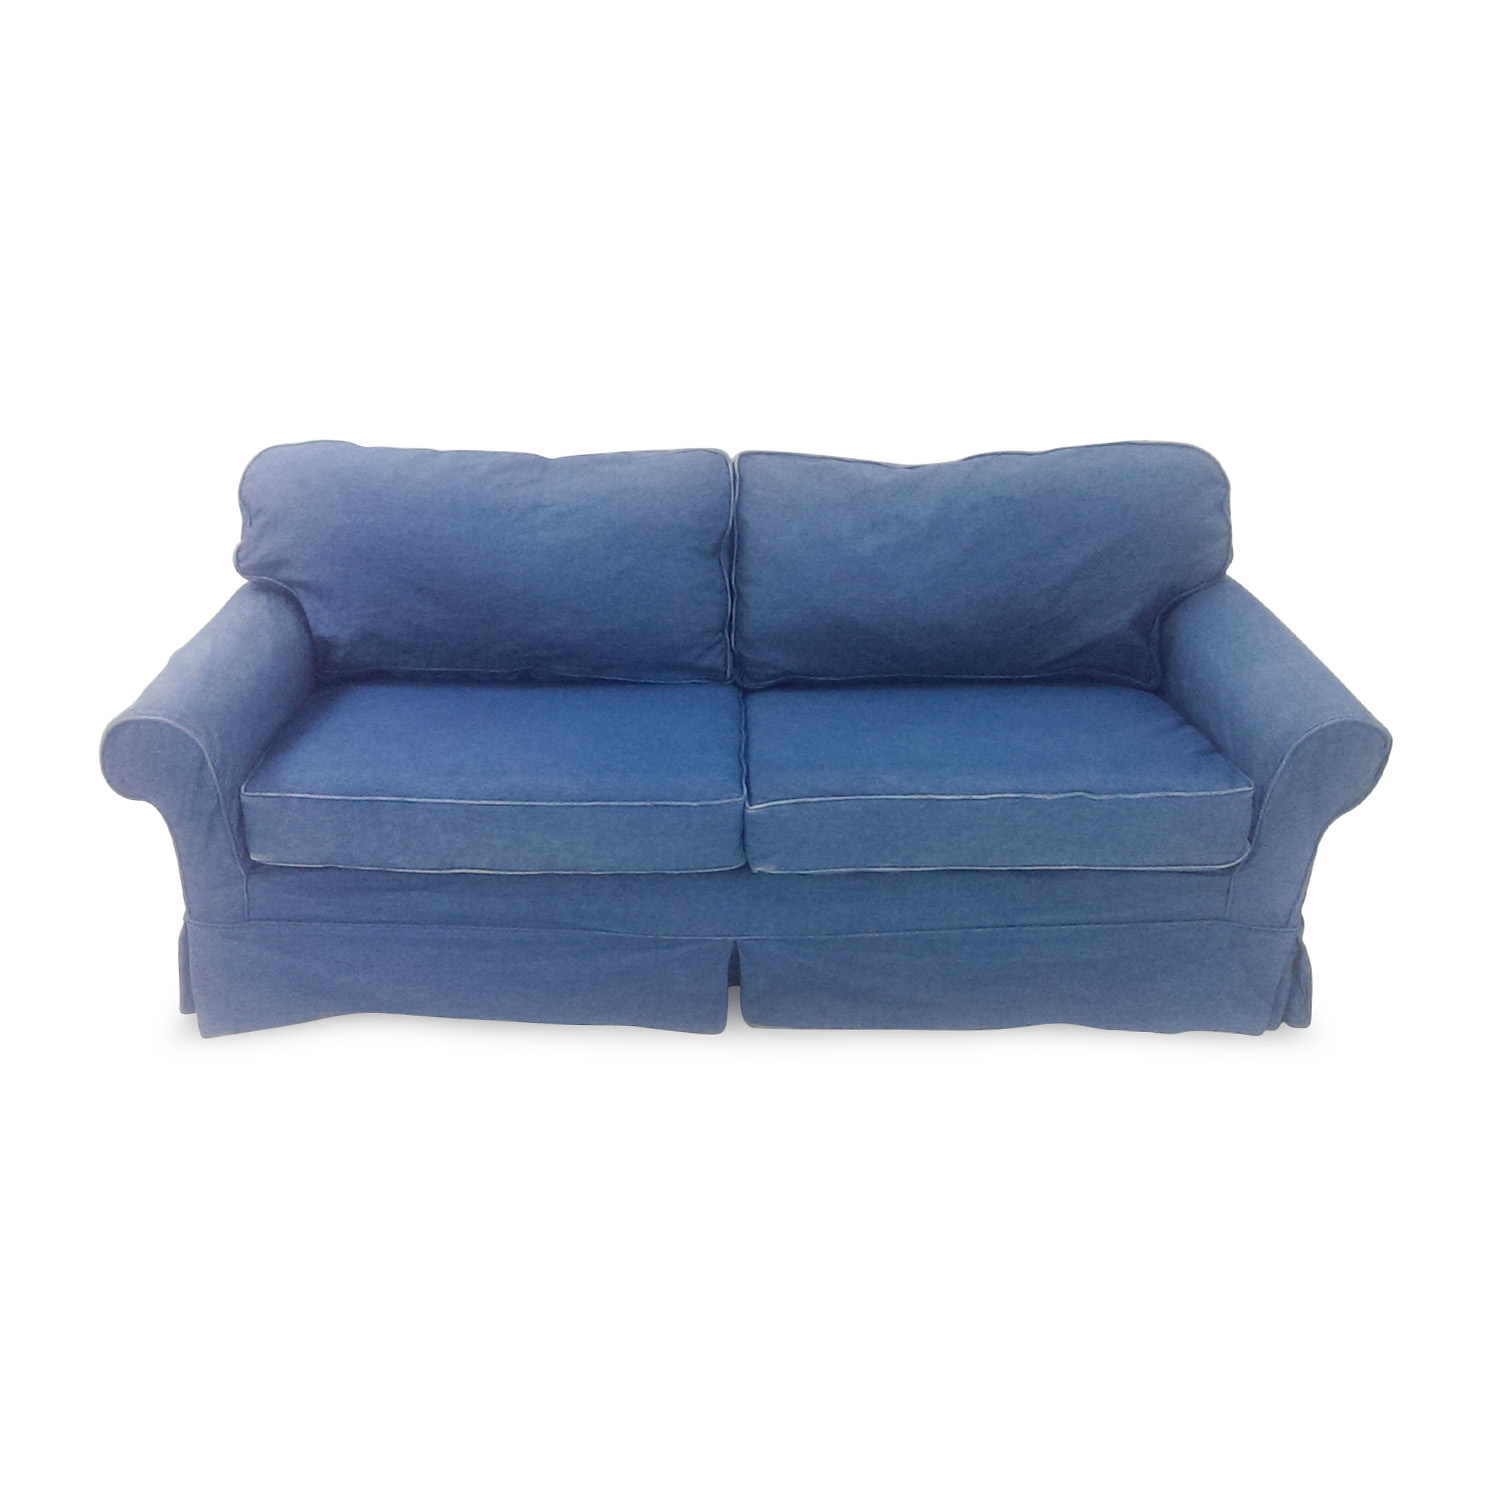 Blue Denim Couch dimensions